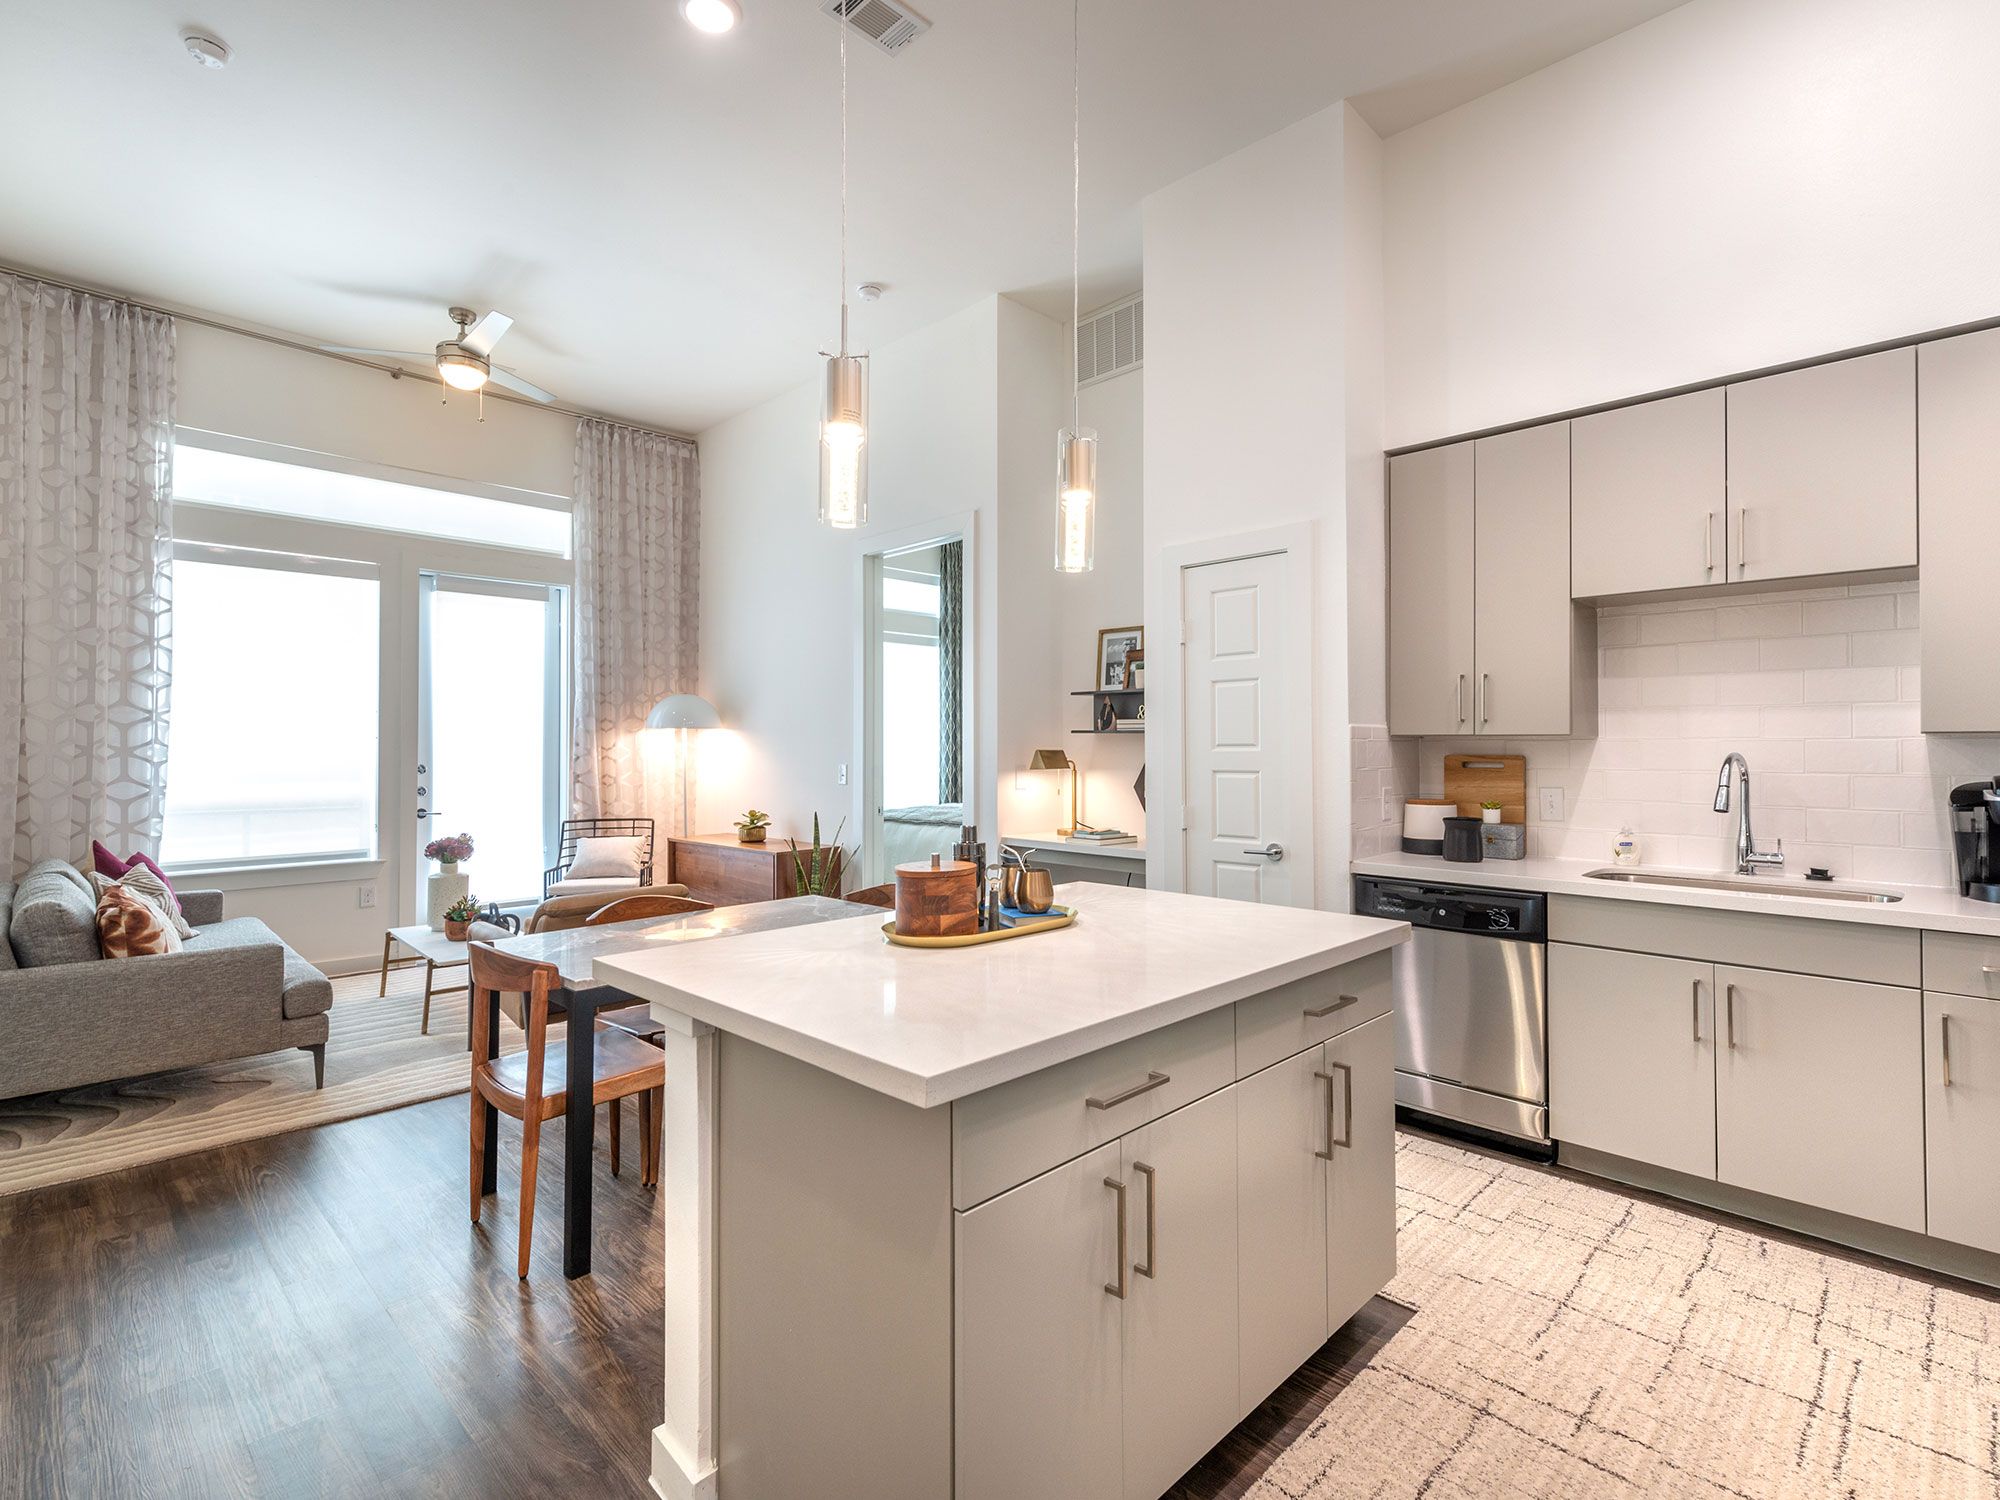 Apartment interior with plank flooring, modern kitchen with stainless steel appliances and designer lighting, and living room with built-in desk and a door leading to patio